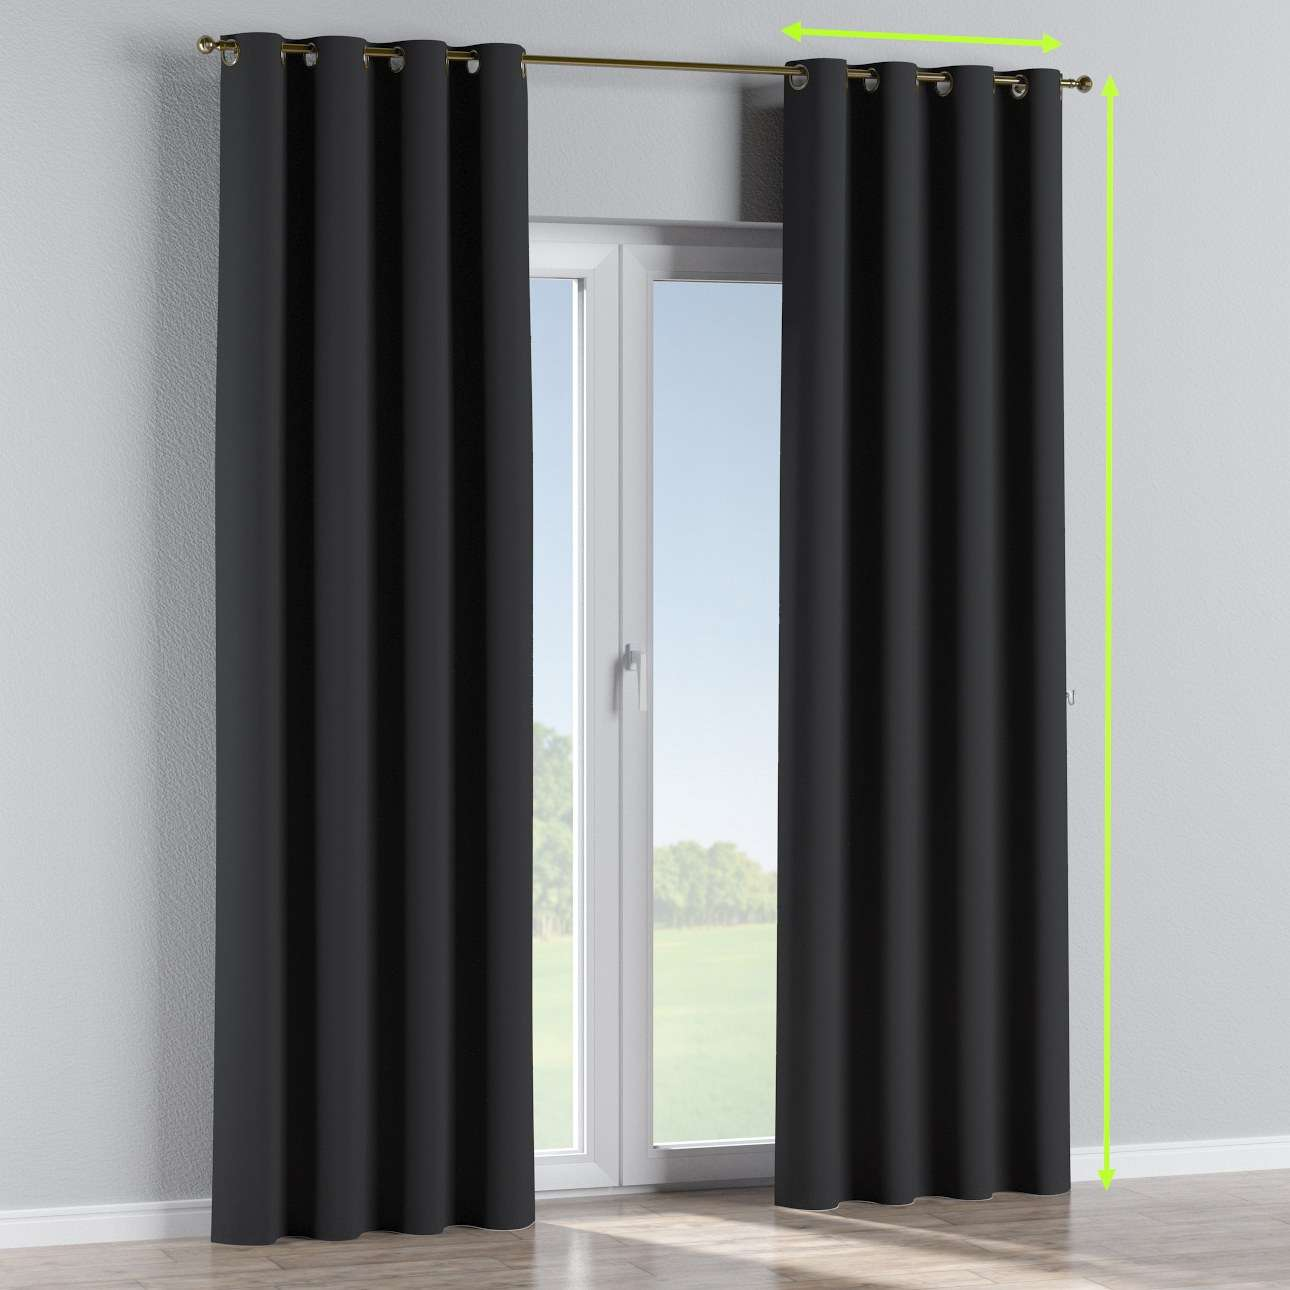 Blackout eyelet curtains in collection Blackout, fabric: 269-99